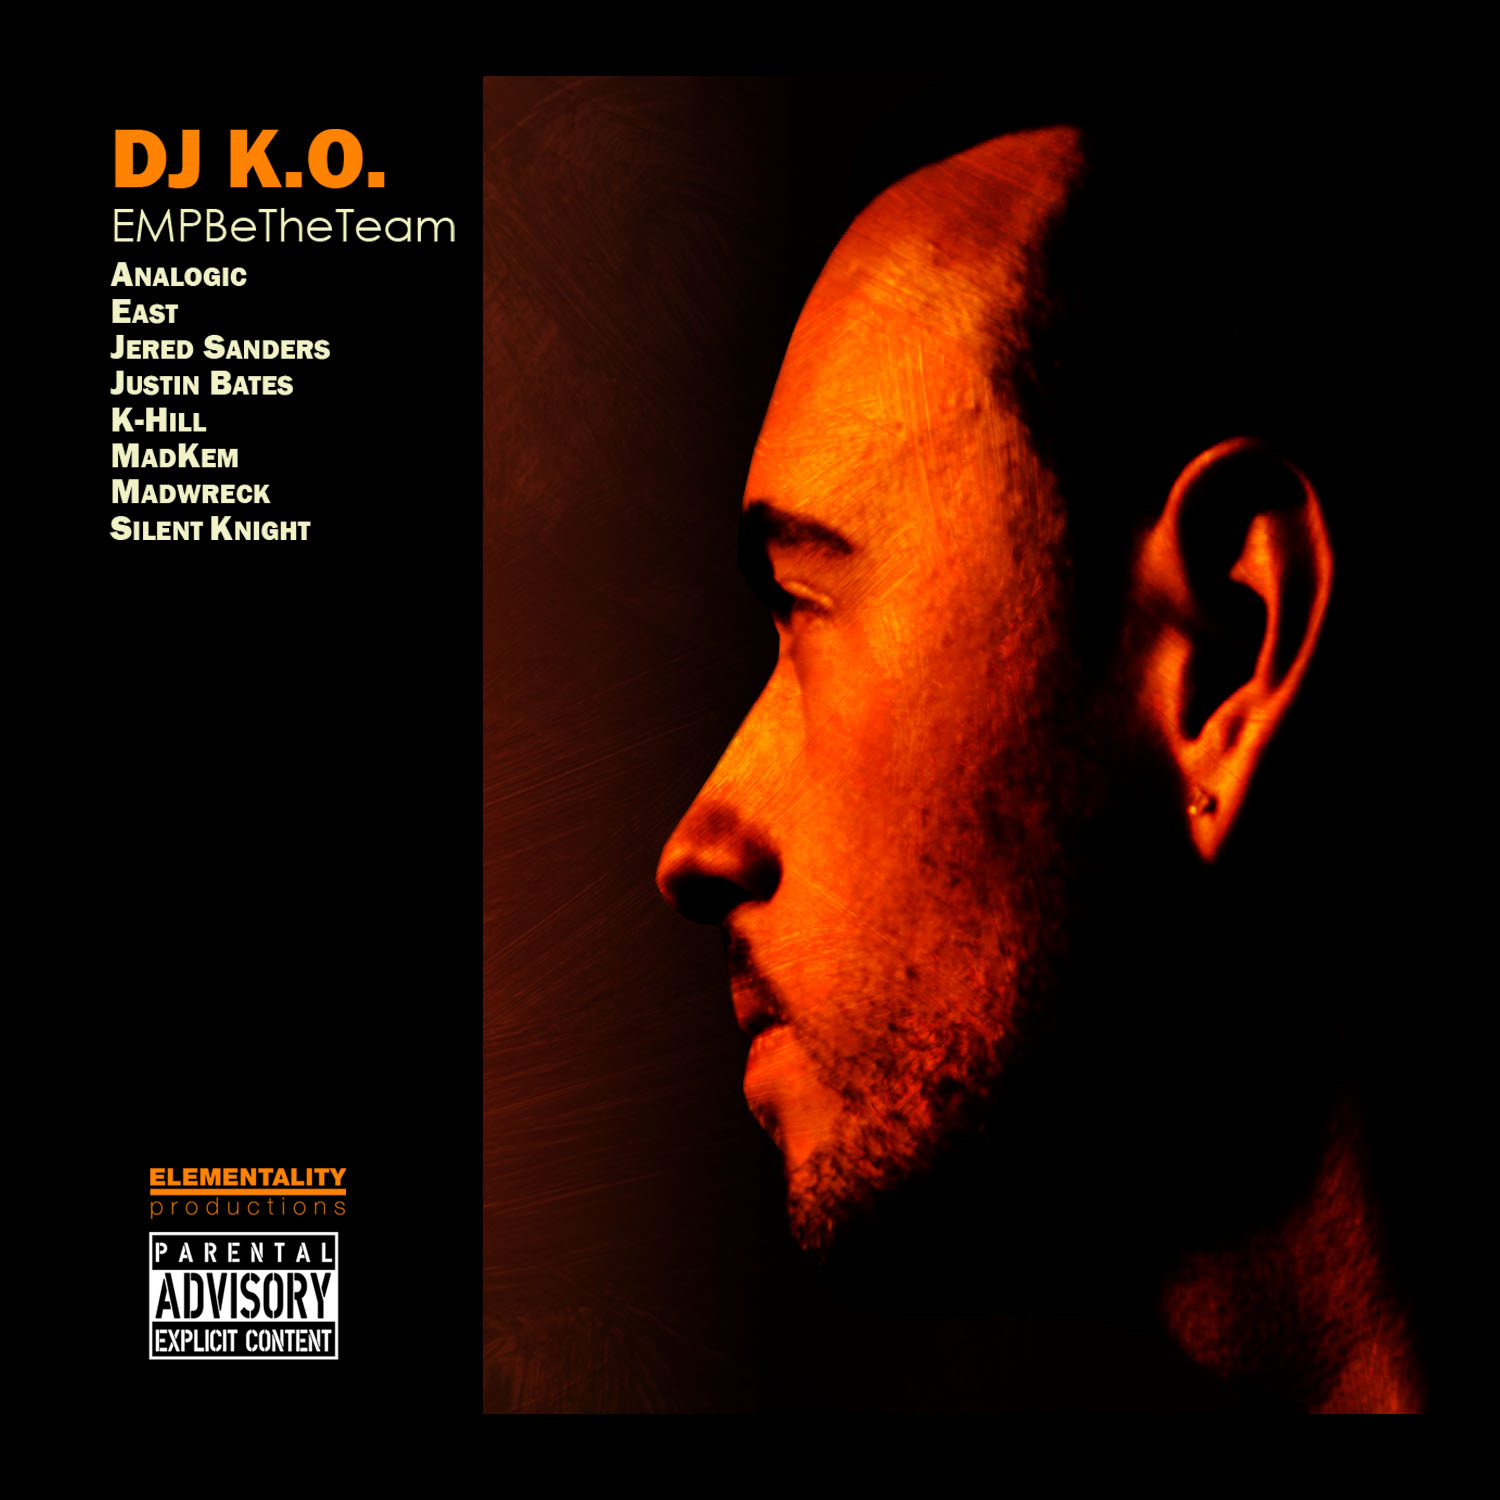 DJ K.O. - Stand Up! ft. Silent Knight, Jered Sanders, Justin Bates, K-Hill, East & MadKem [audio]